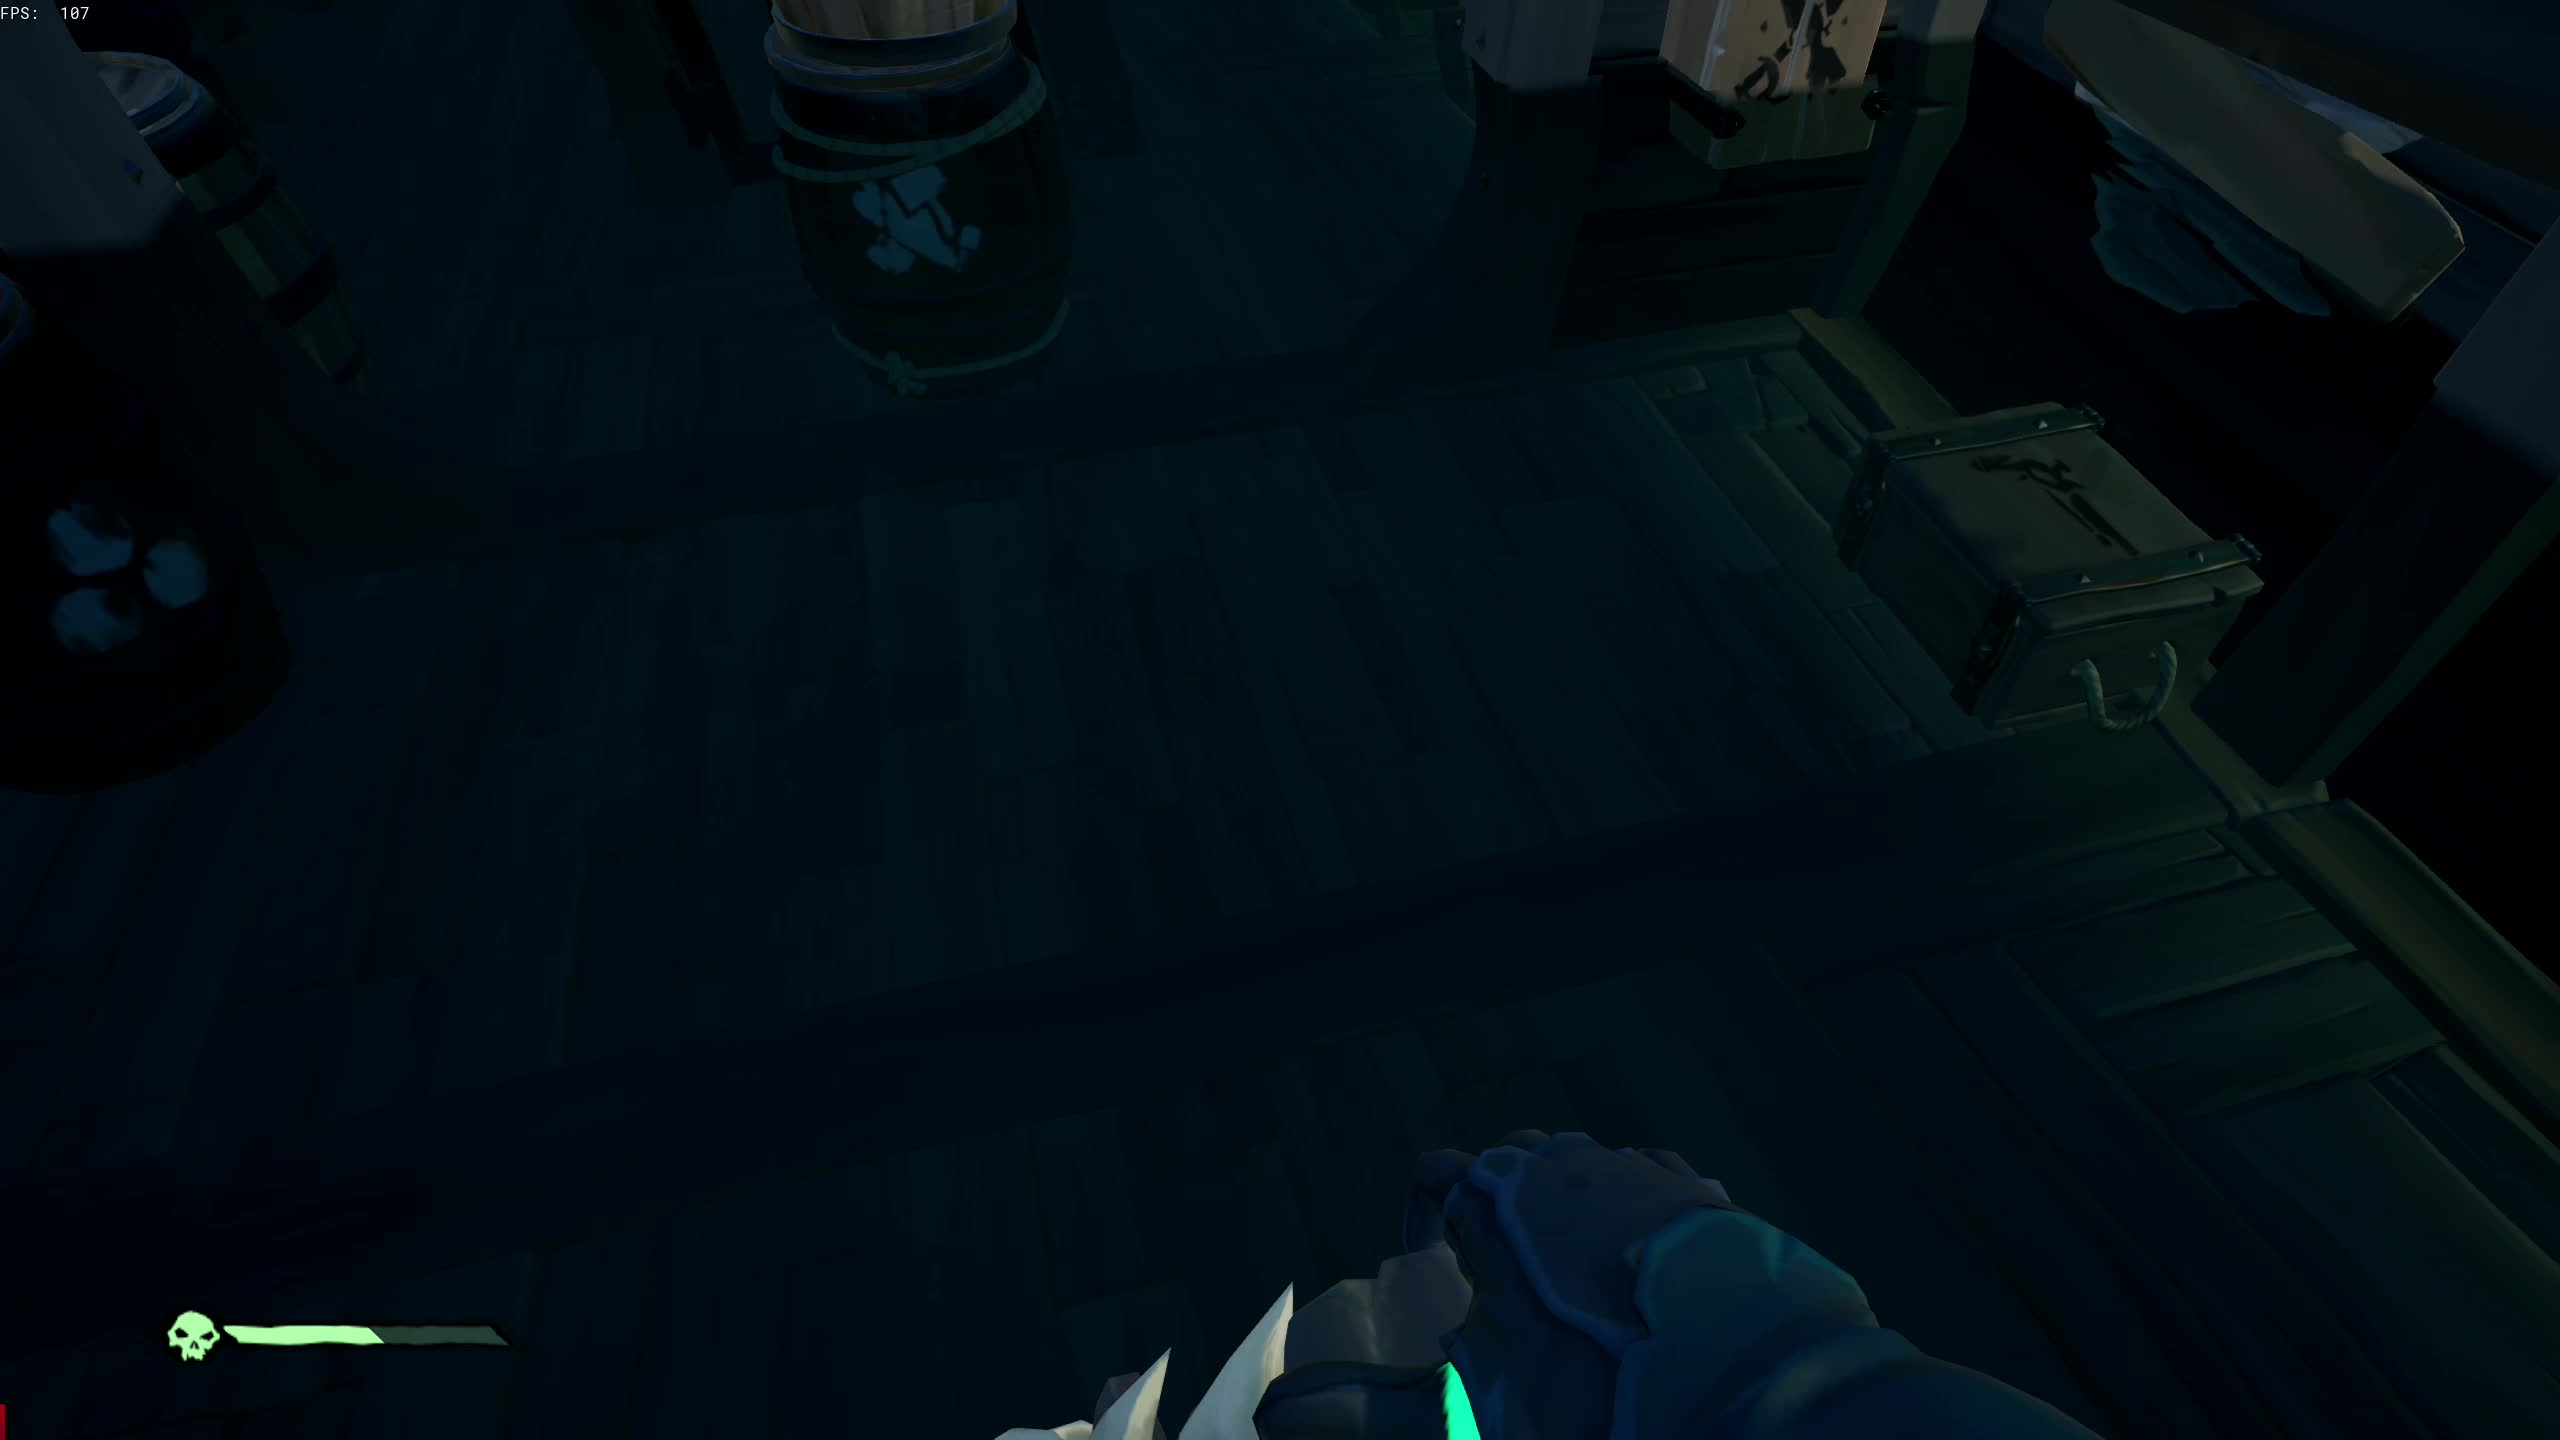 seaofthieves, Gnarly boardslide GIFs